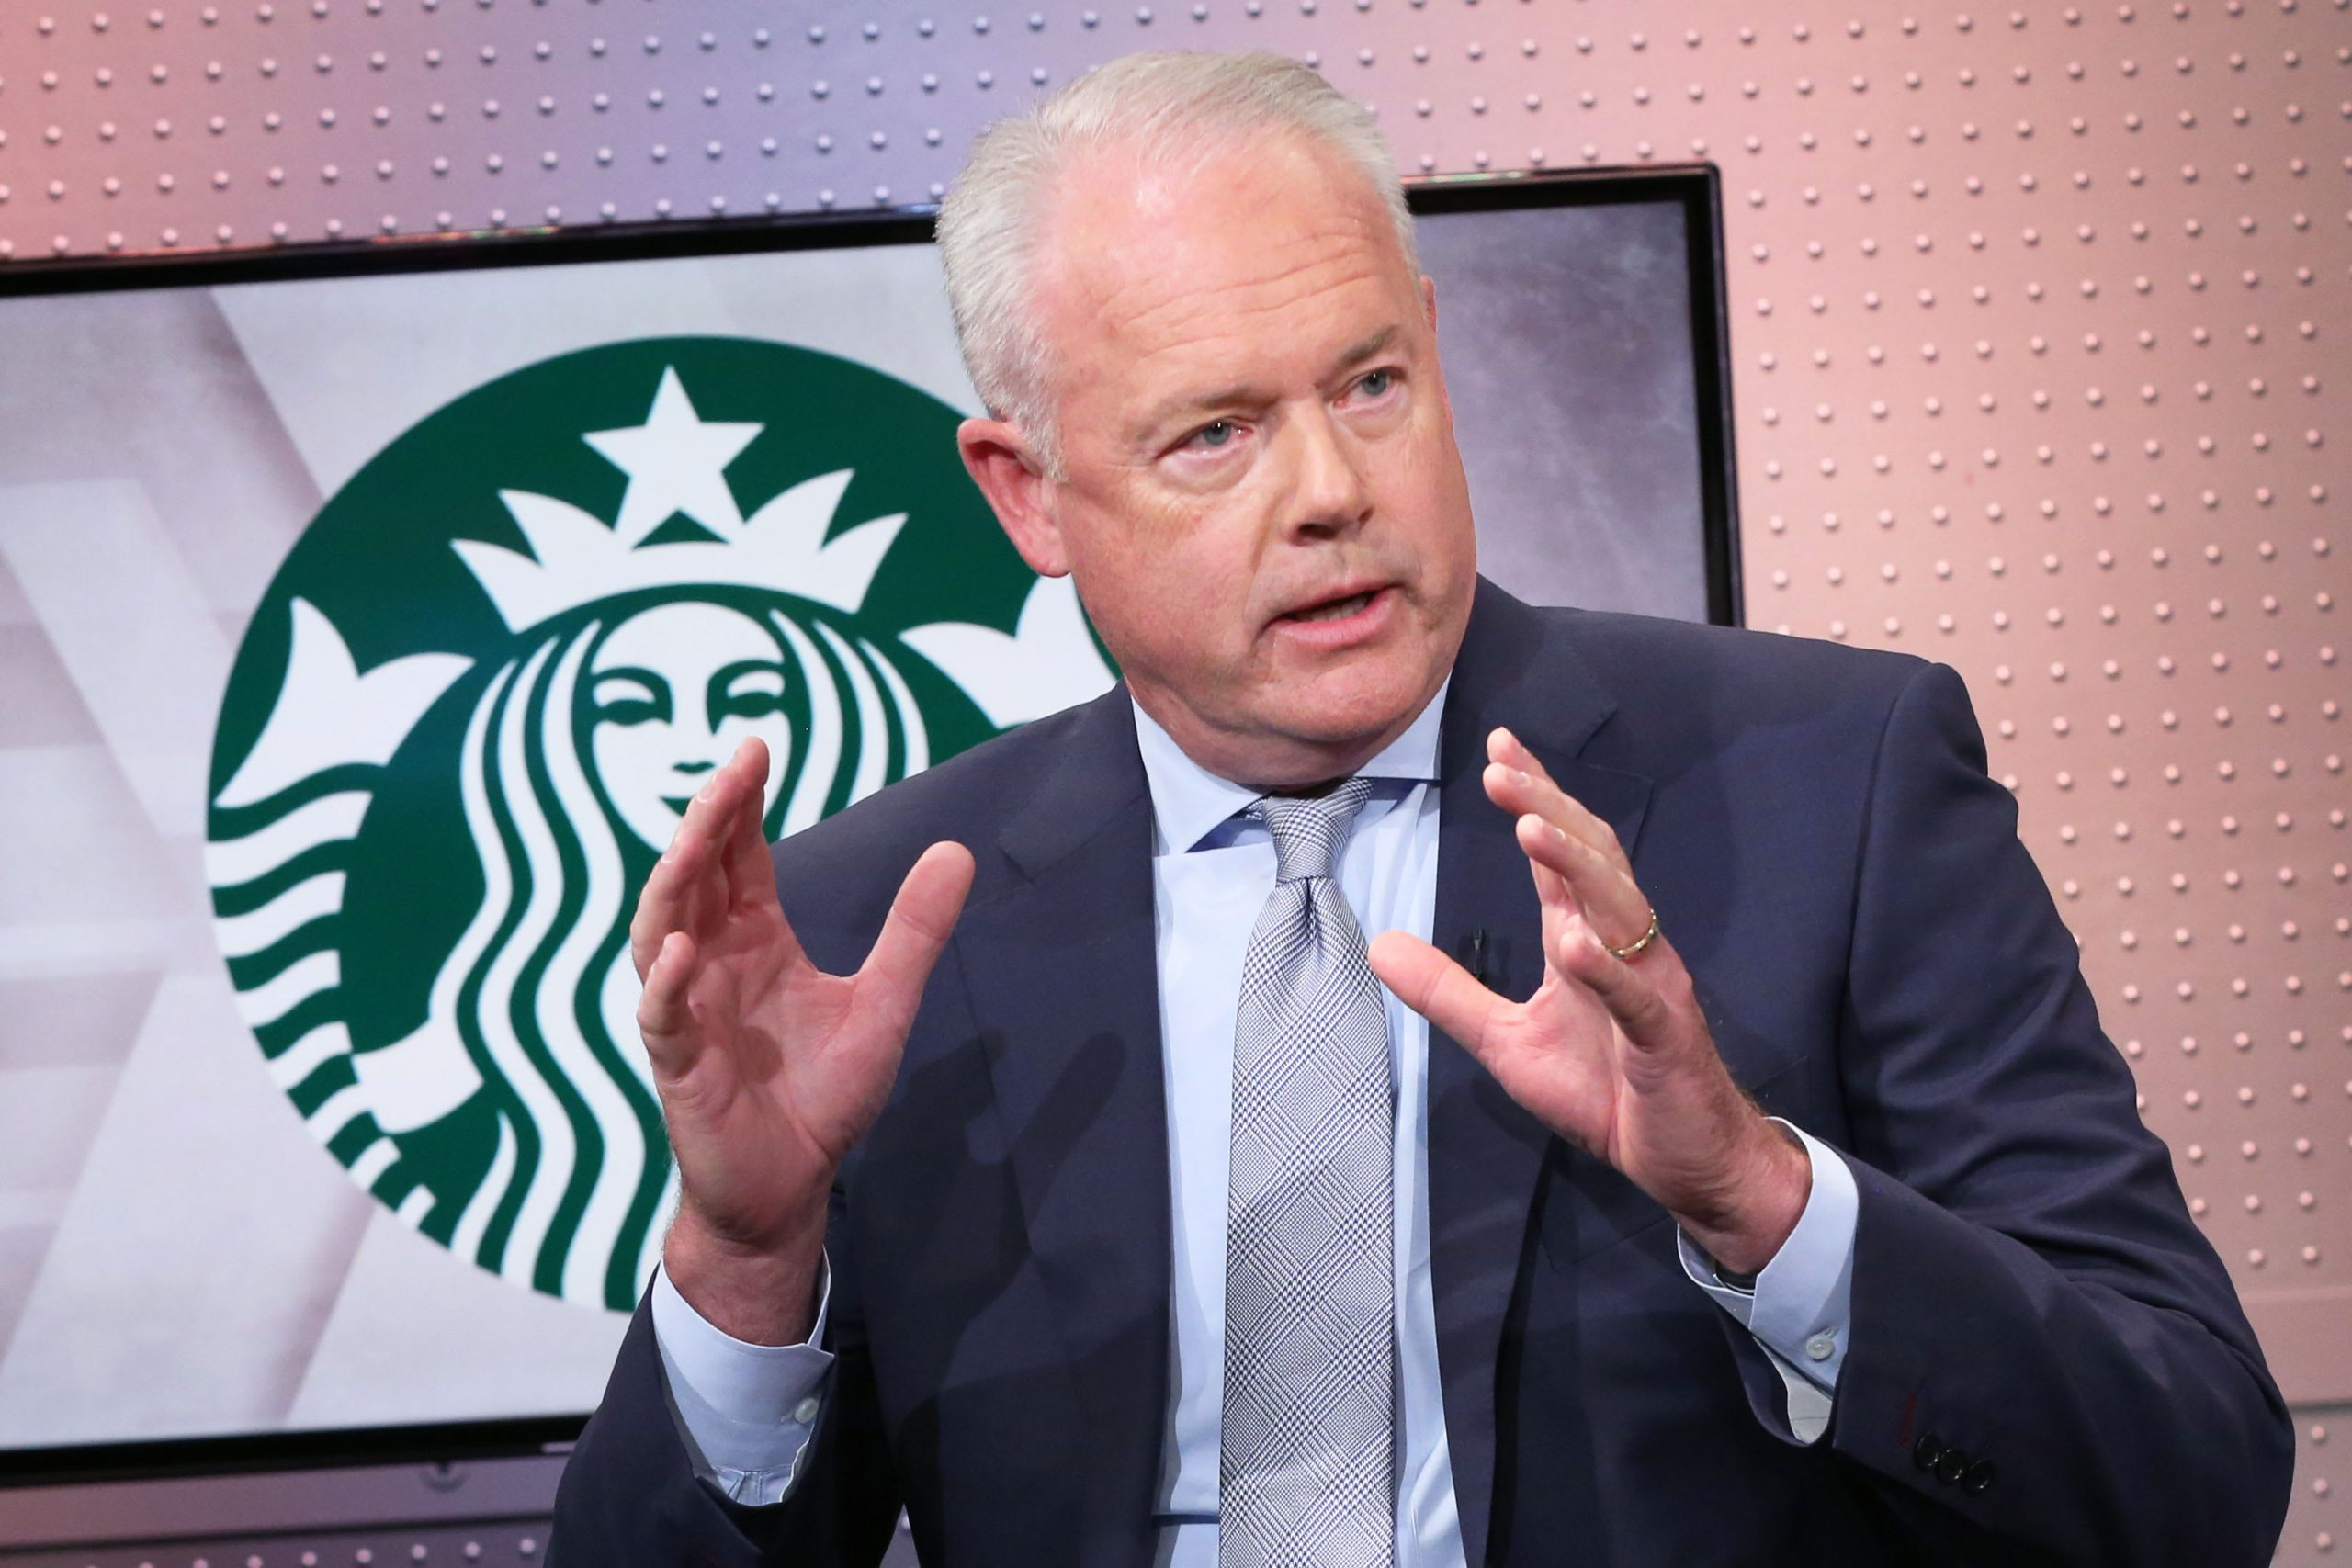 Starbucks Ceo Says Customers May Only Be Able To Order Via Drive-thru Or Mobile Due To Coronavirus photo